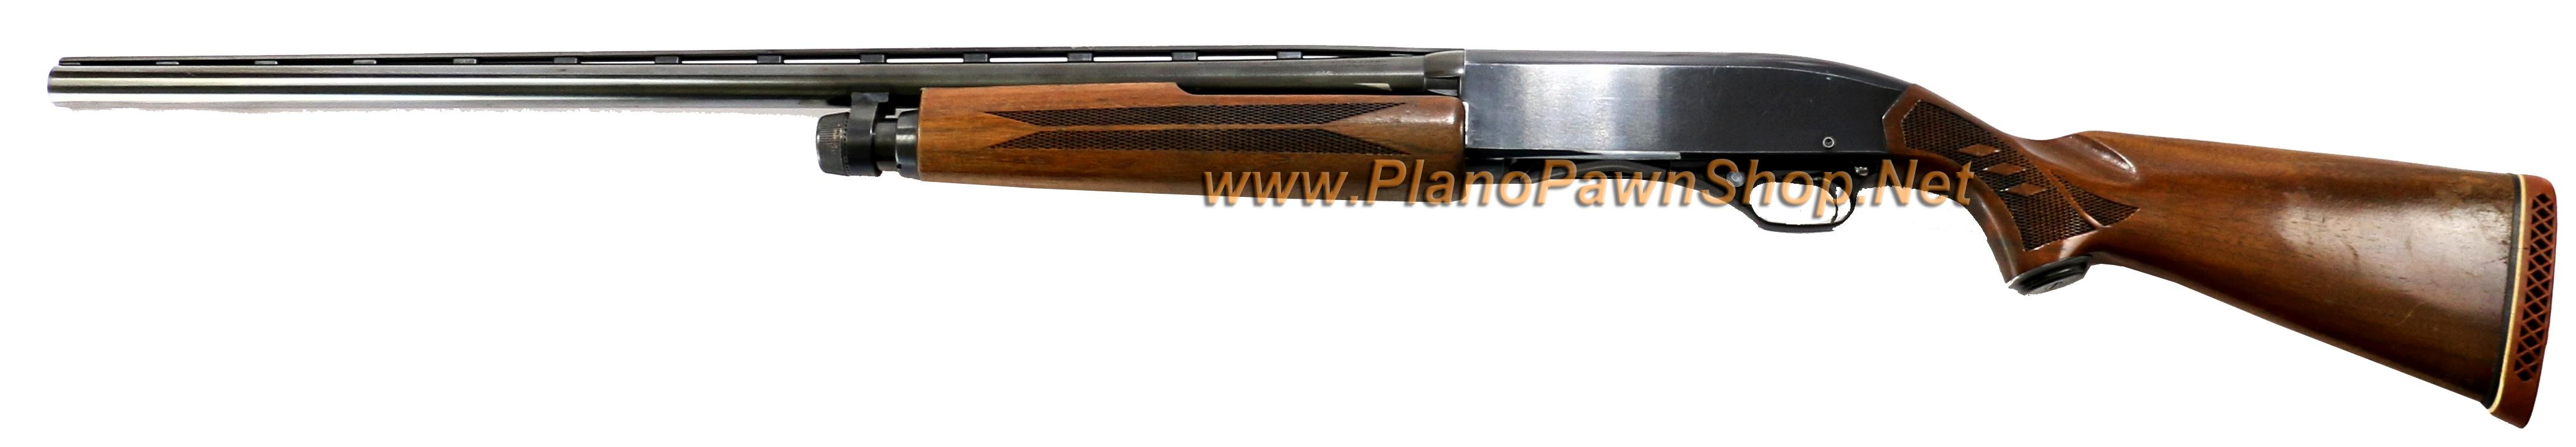 Winchester Model 1200 12 GA Pump Shotgun  Guns > Shotguns > Winchester Shotguns - Modern > Pump Action > Deer Guns